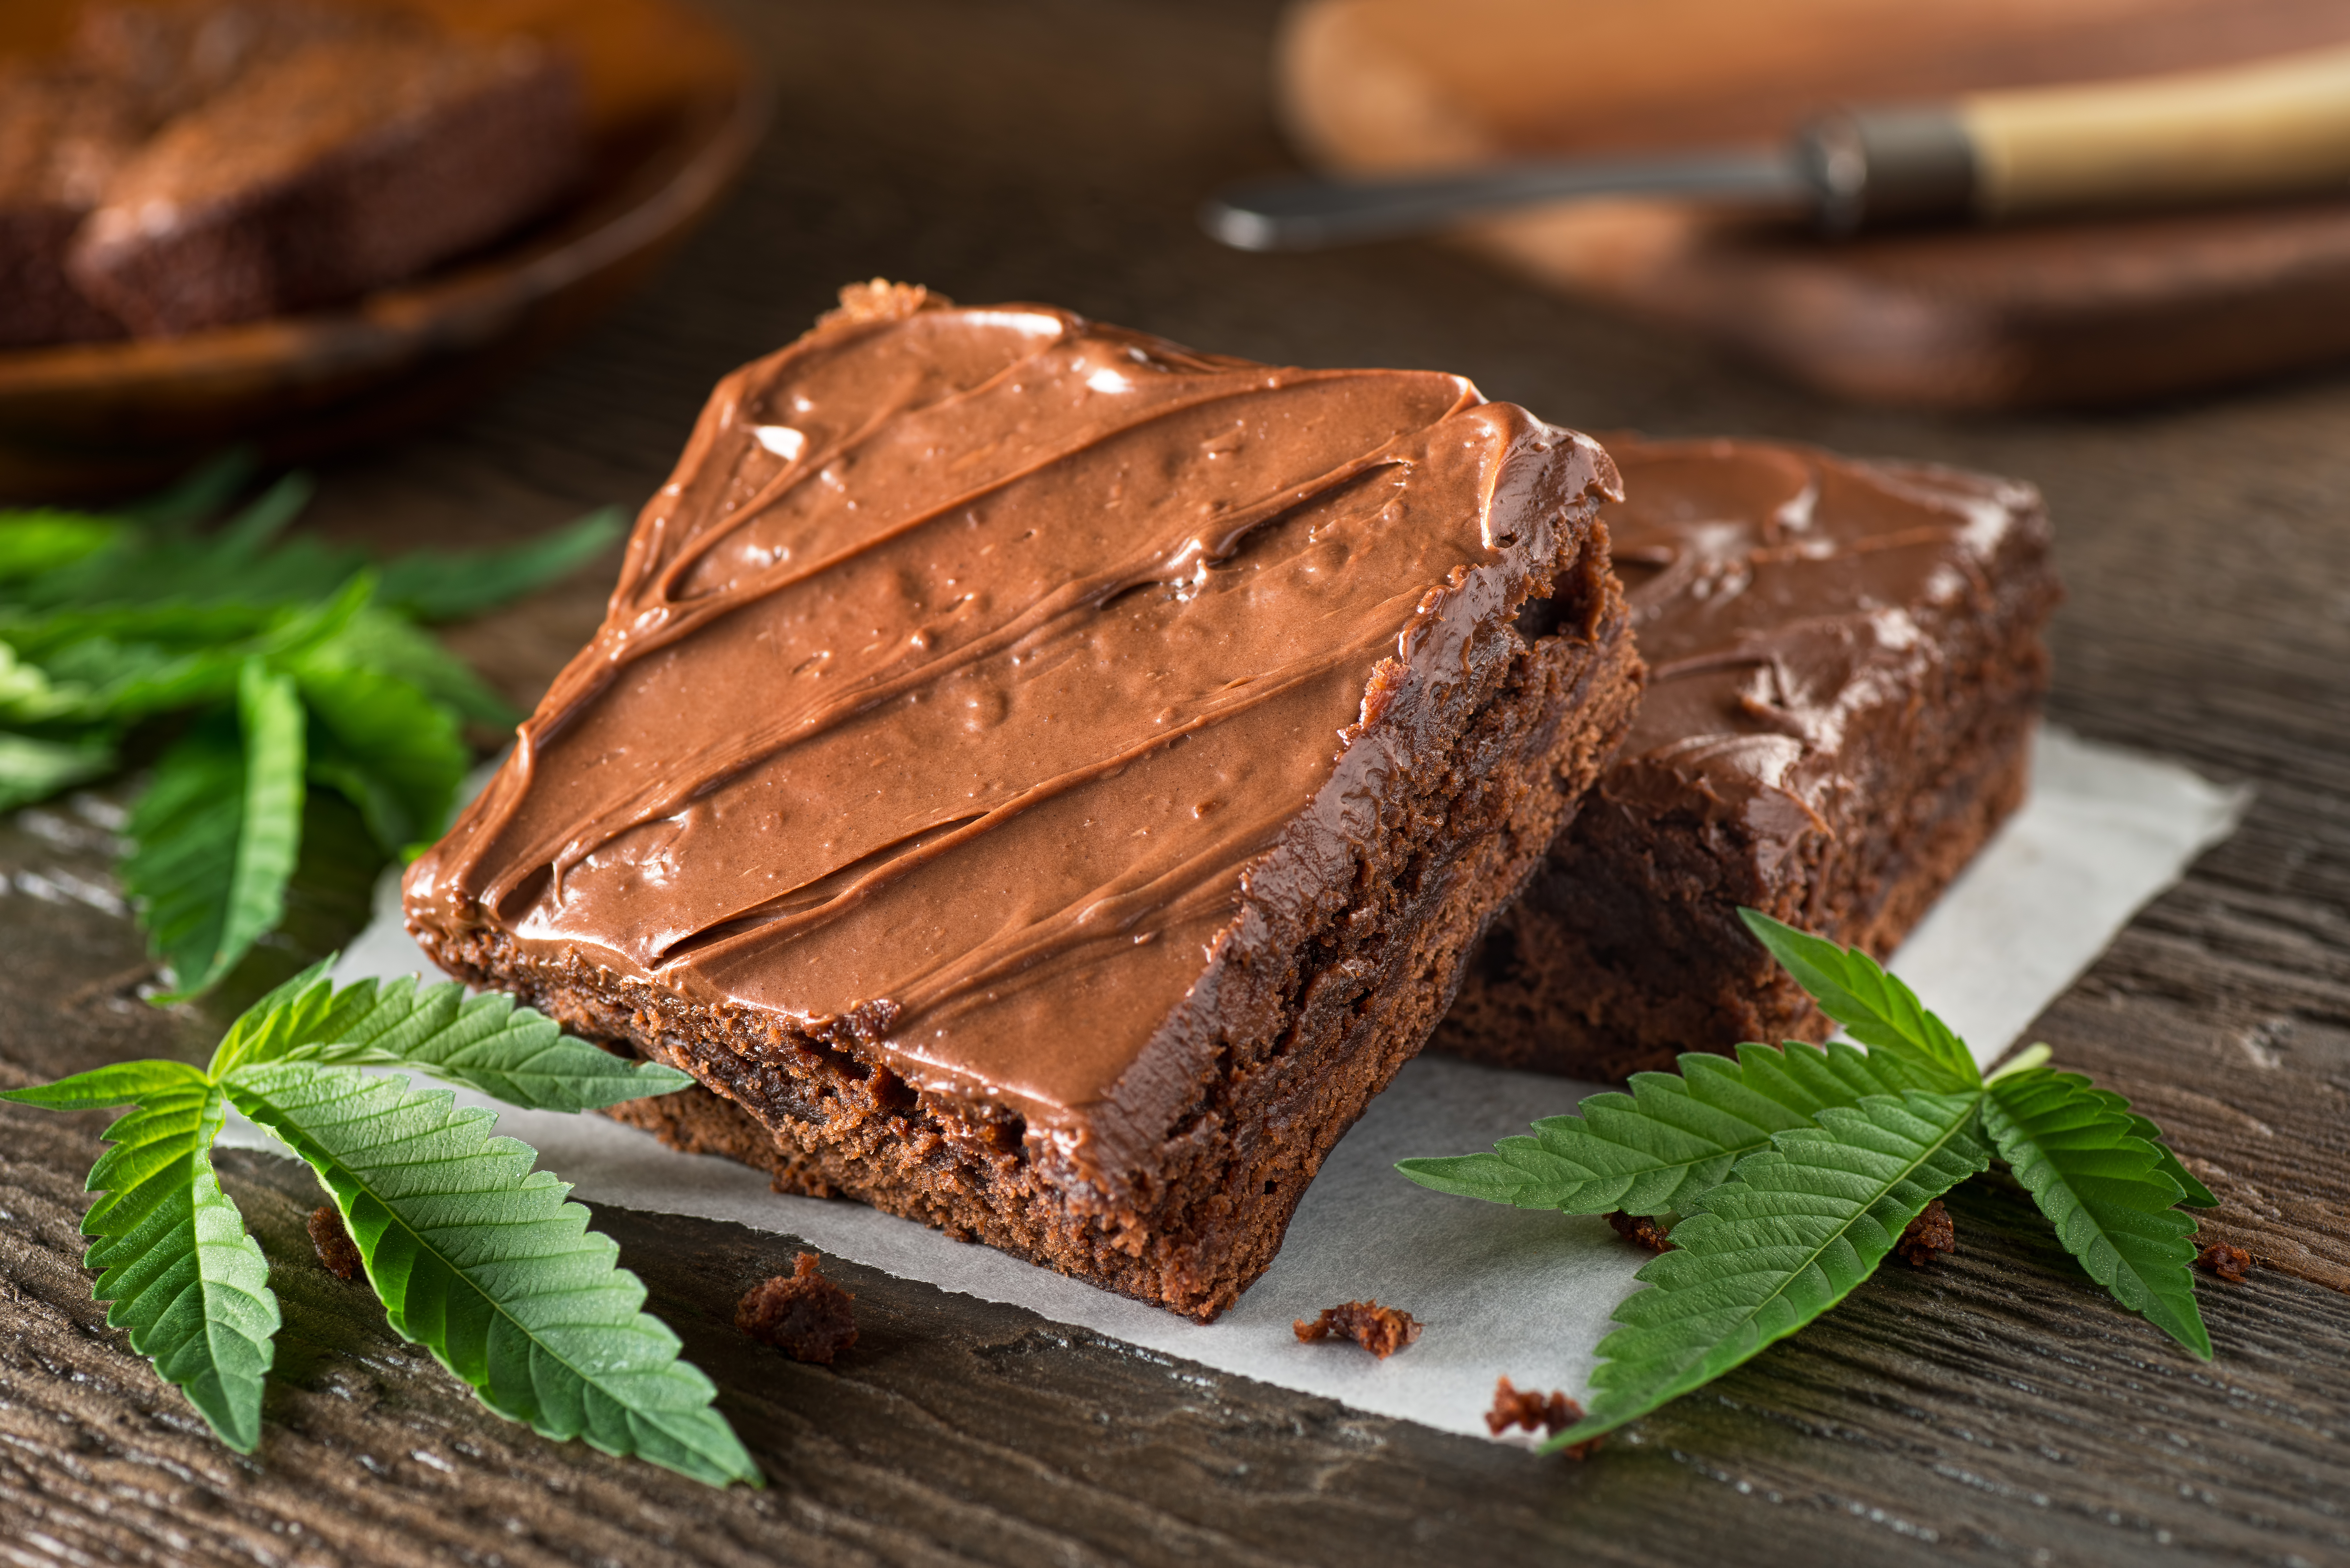 Two brownies surrounded by cannabis leaves.